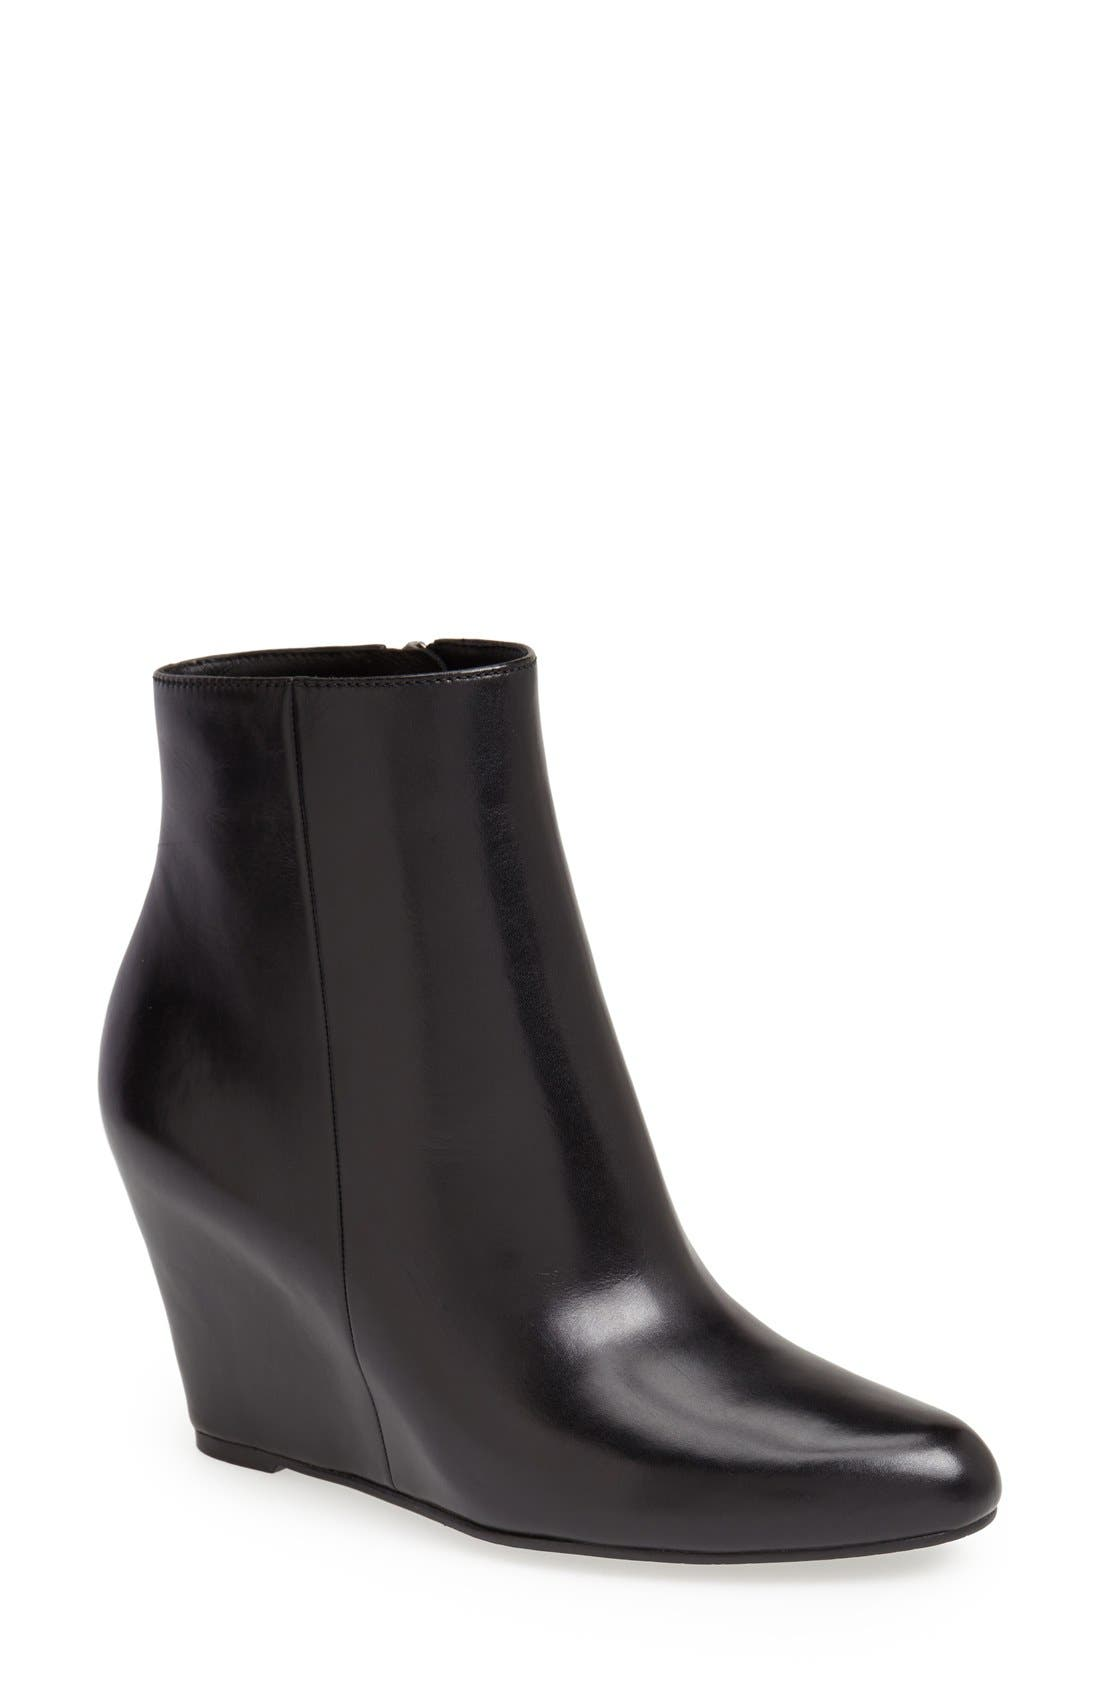 'Abri' Wedge Bootie, Main, color, 001